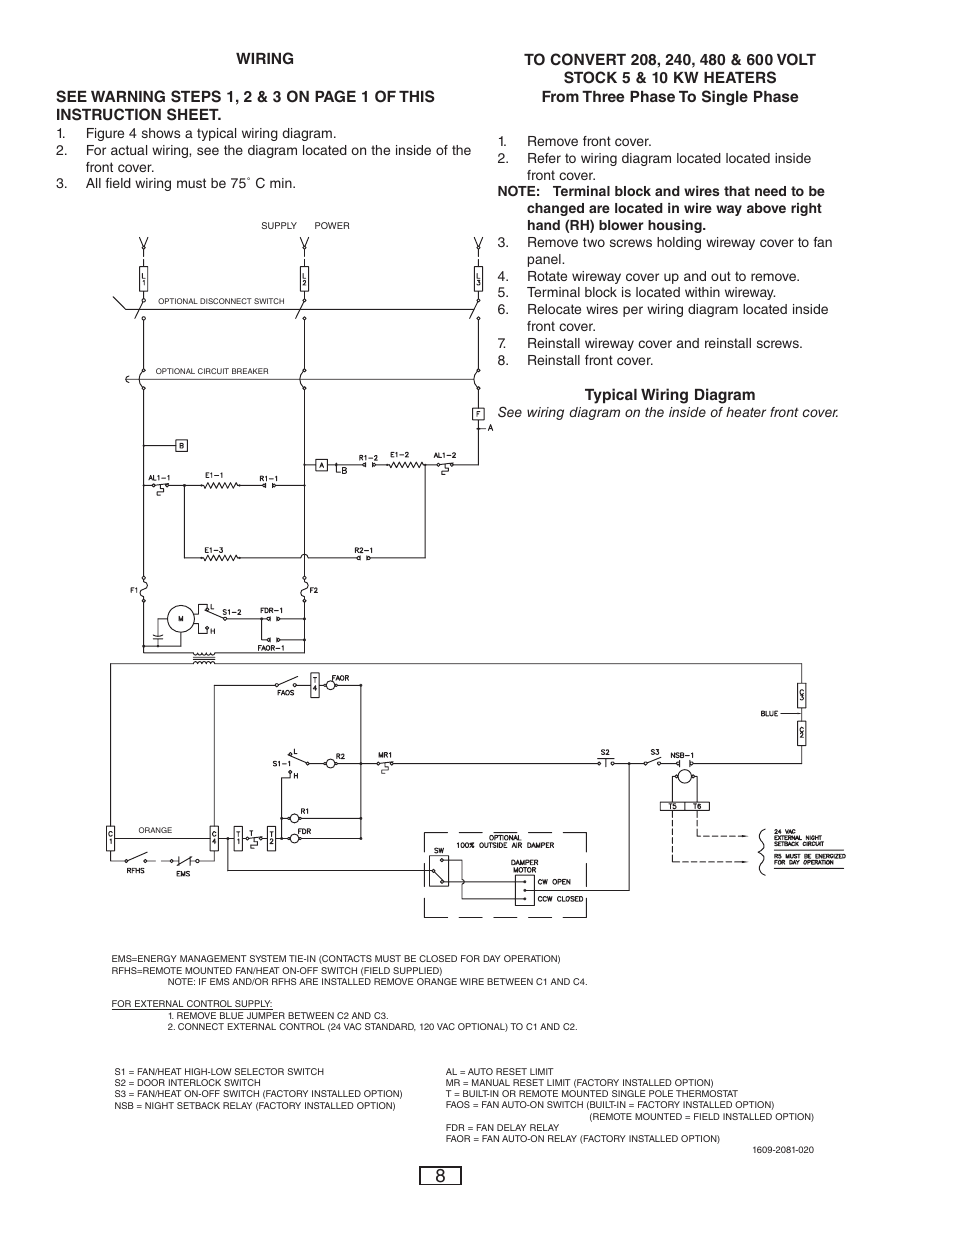 qmark-cus900-stock-cabinet-unit-heater-page8  Phase Wiring Diagram Heater on watlow immersion, raypak pool, dayton gas, for p3lbx12f08001, aerothermes gas unit, graphical electric, atwood hot water, for hz514, chromalox immersion,